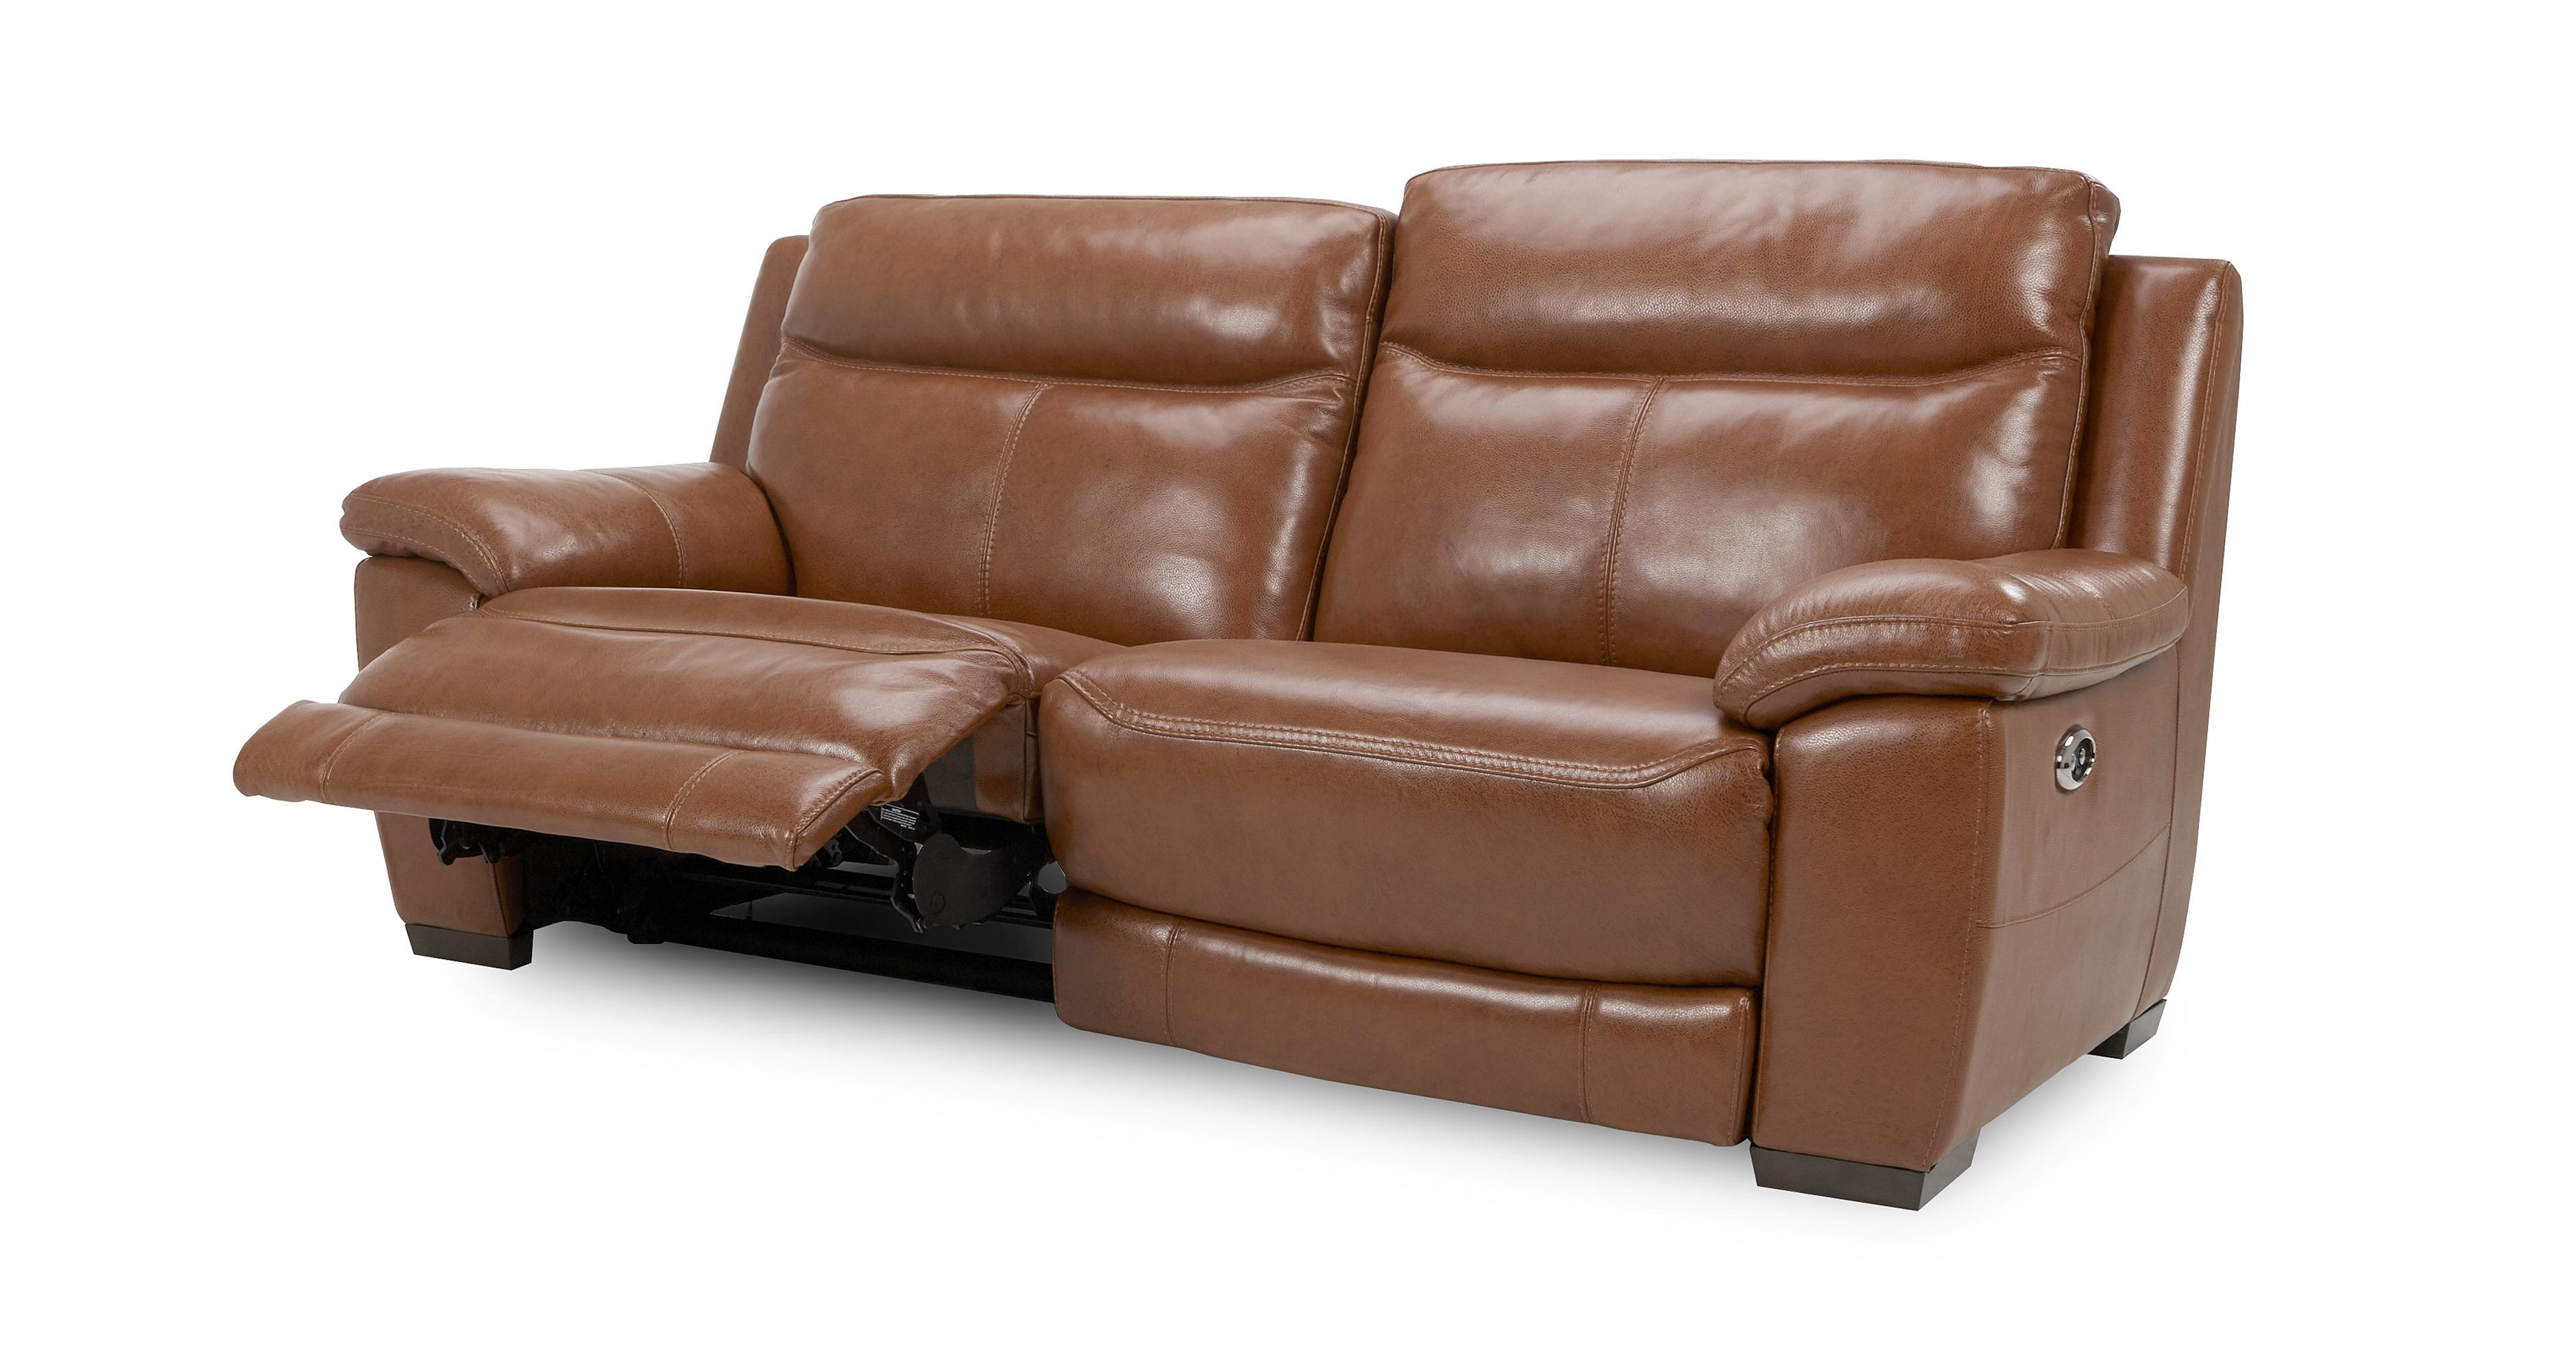 Liaison Leather and Leather Look 3 Seater Electric Recliner Brazil